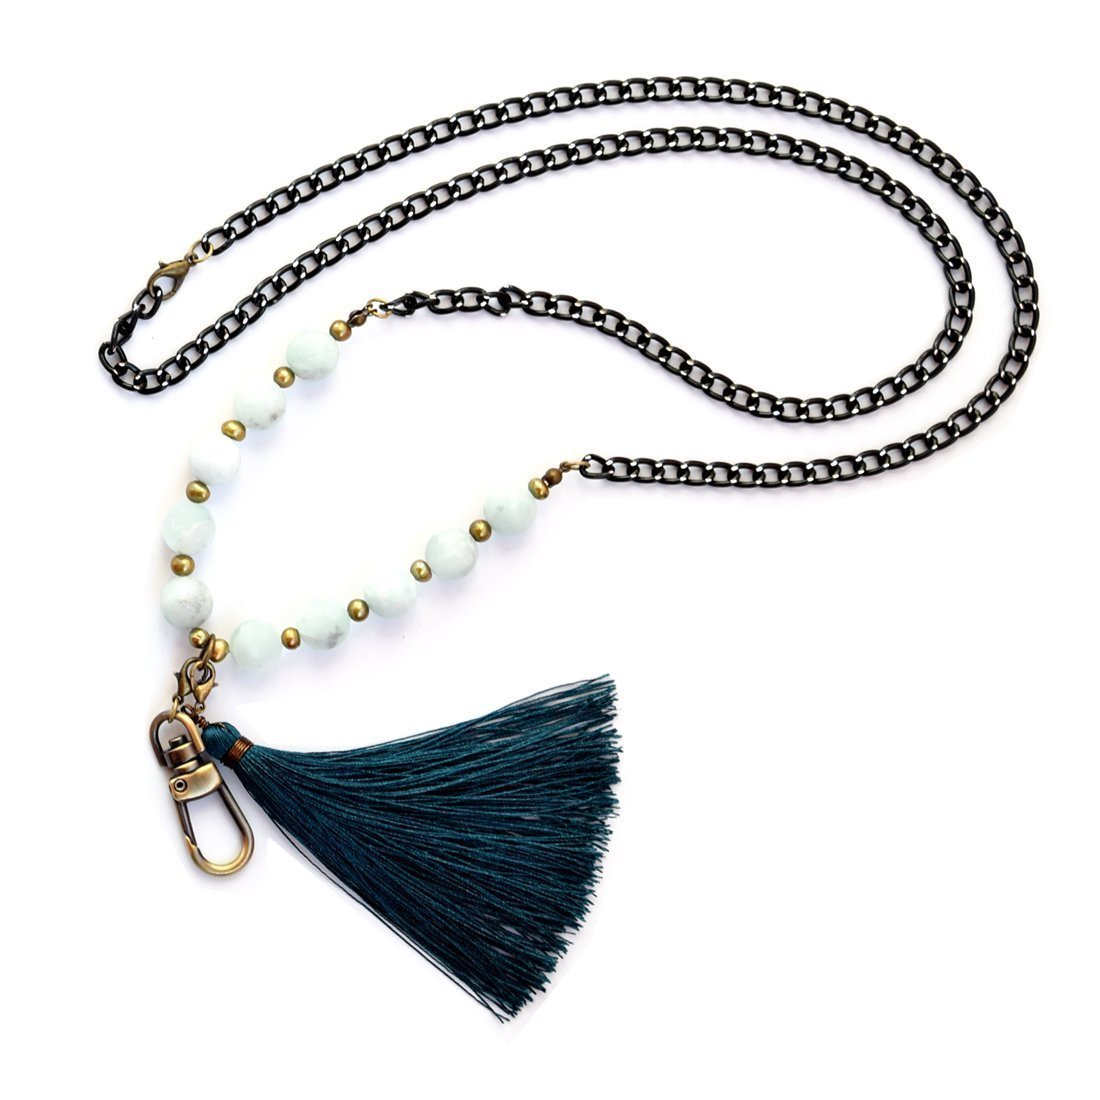 Crimmy - Fashion Beaded ID Holder - Women's ID Badge Holder Necklace with Convertable ID Hook and Tassel